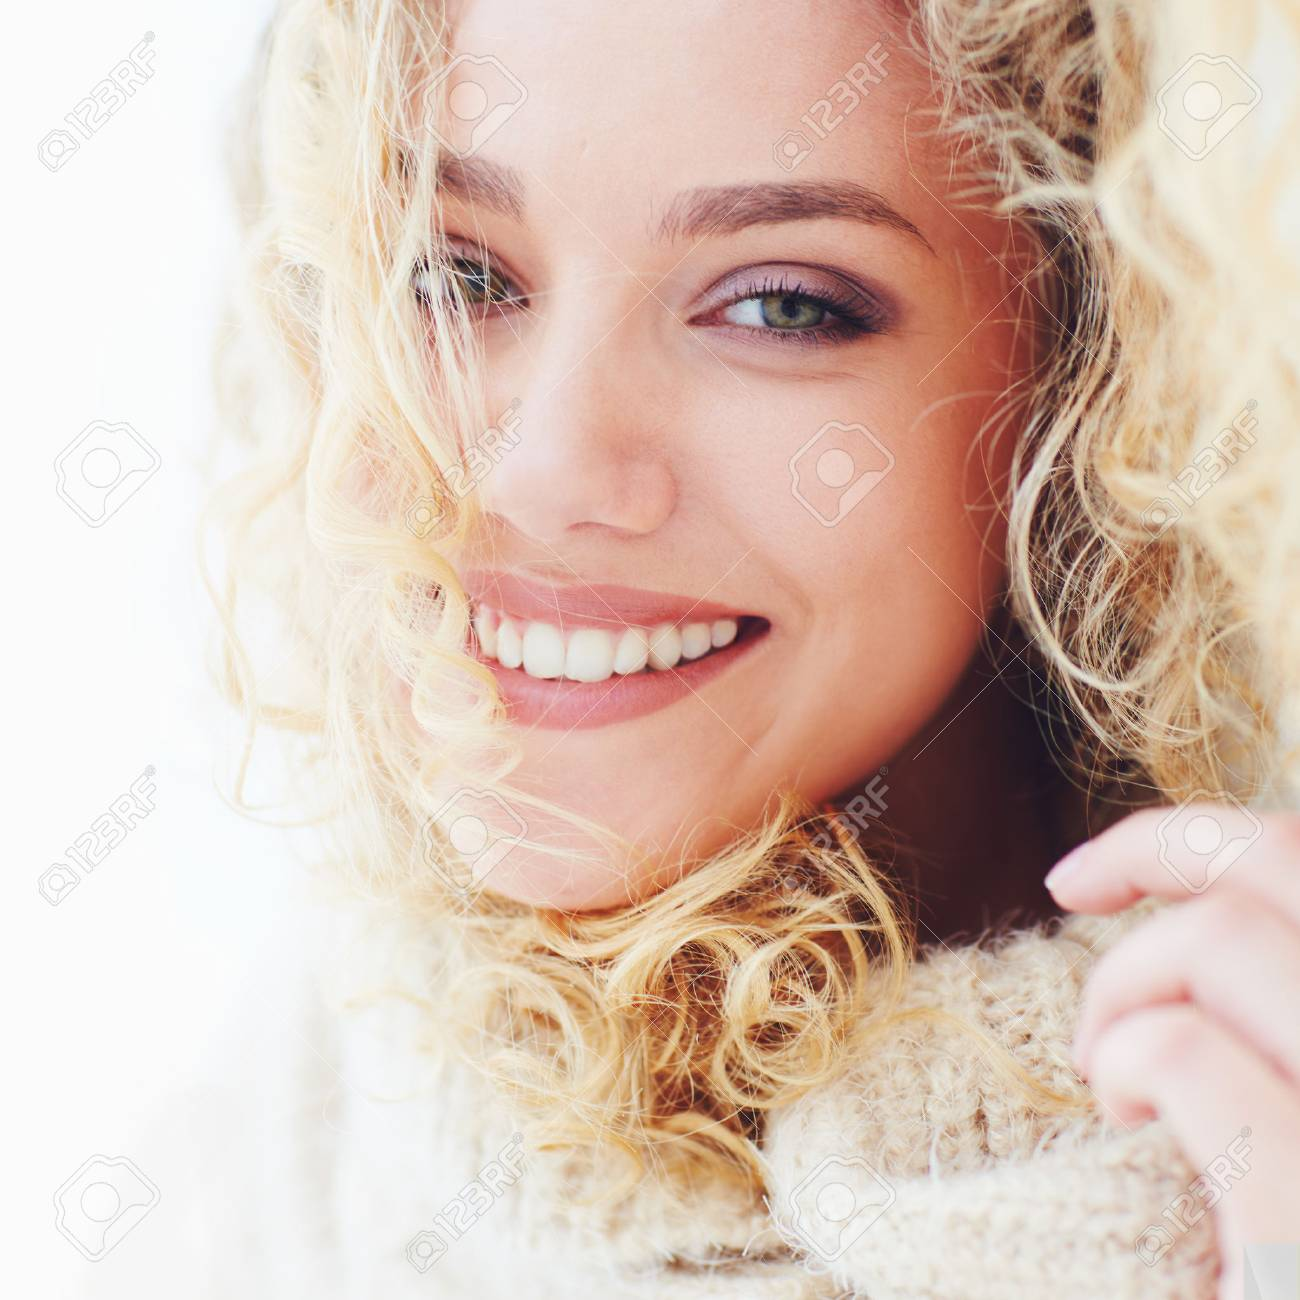 portrait of beautiful happy woman with curly hair and adorable smile - 72158635